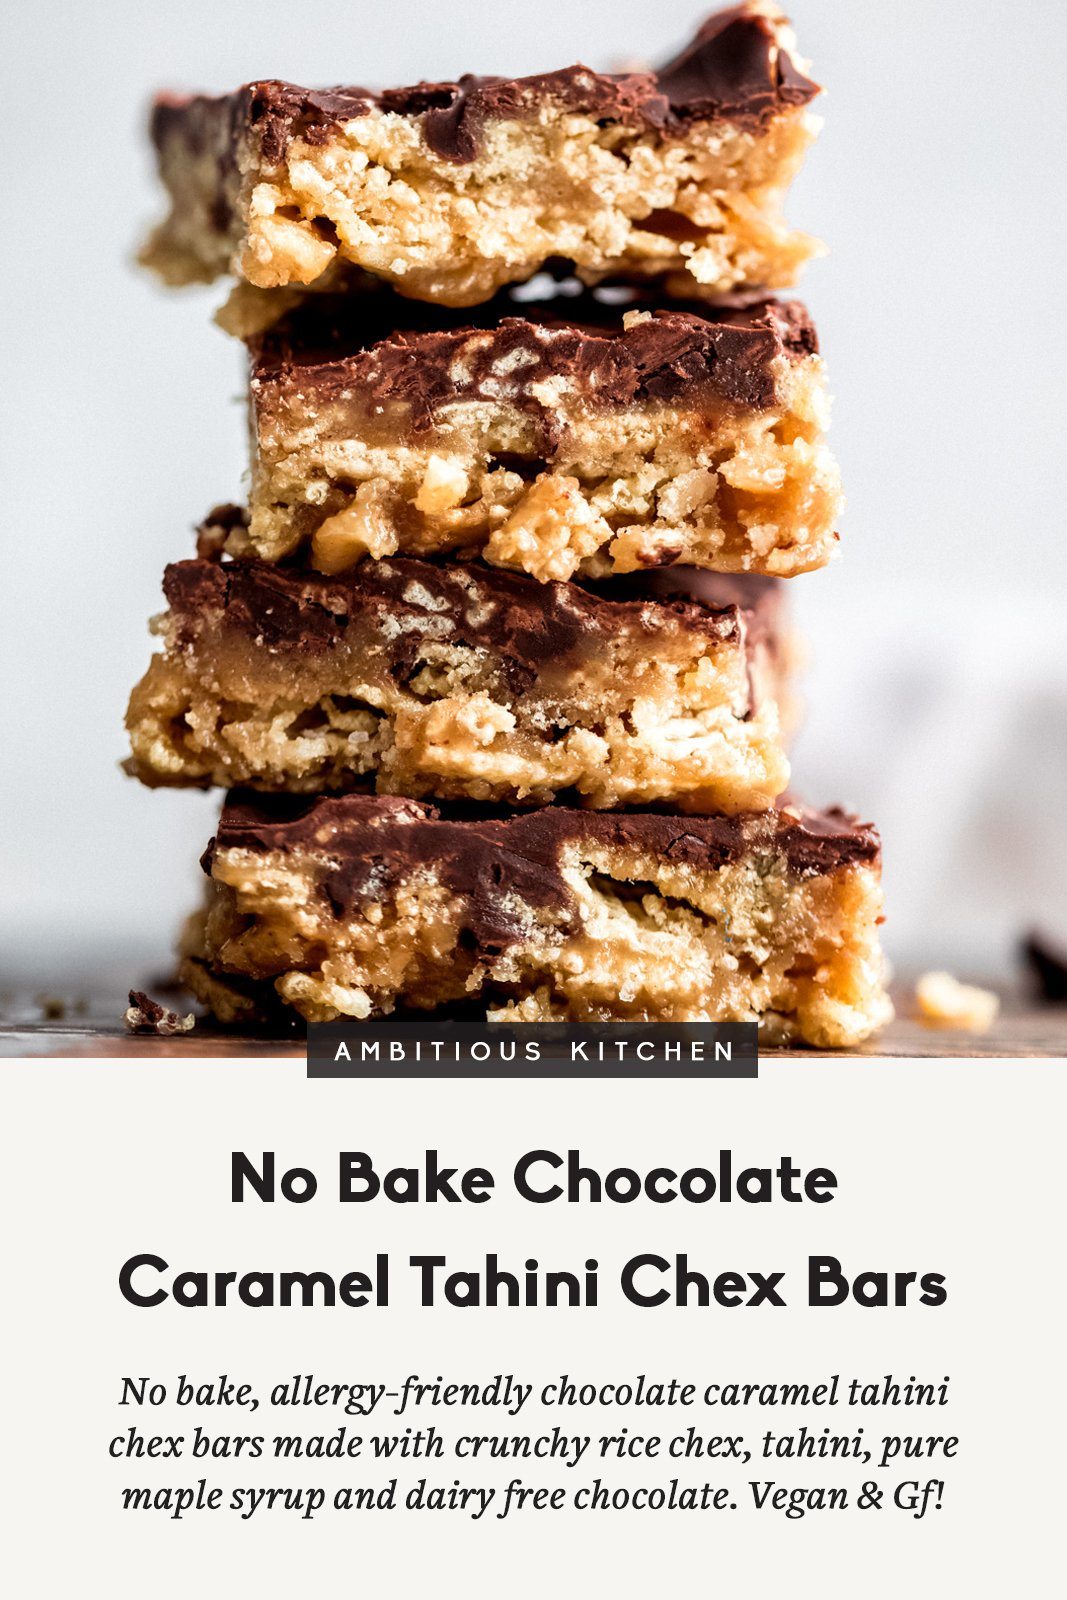 no bake chocolate caramel tahini chex bars in a stack with text underneath